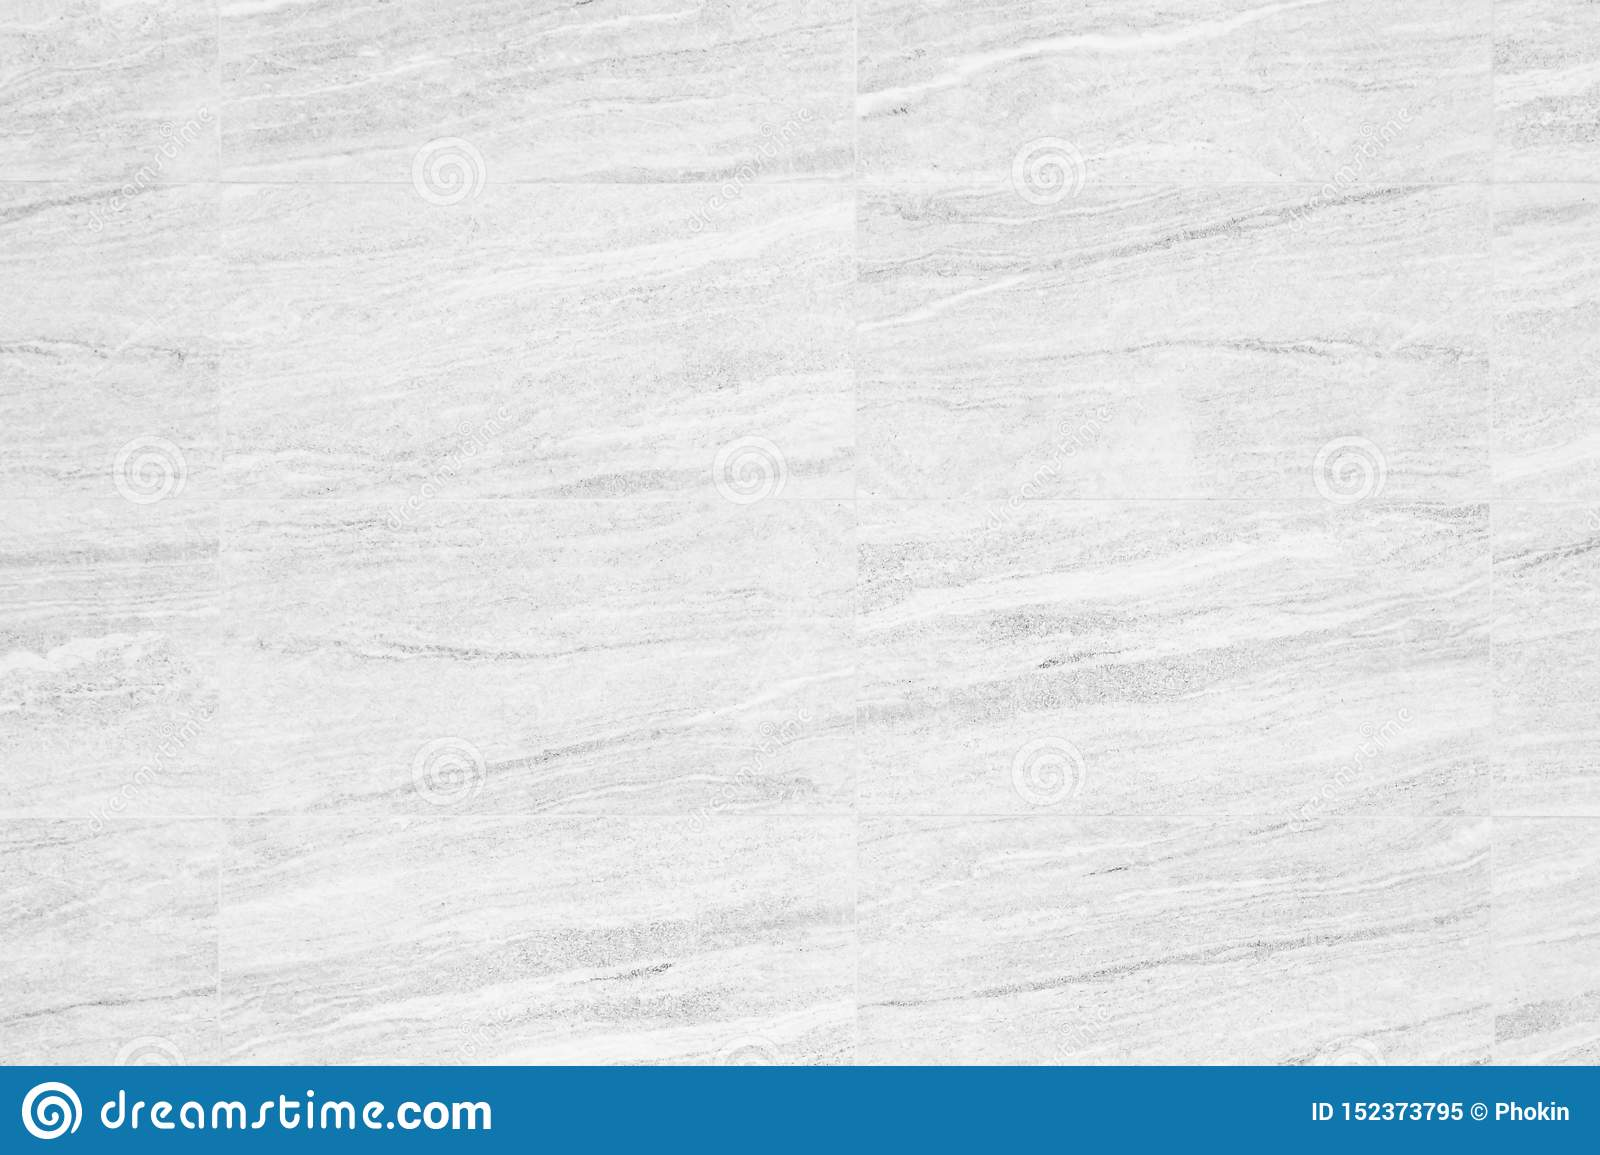 White Marble Texture And Background Or Slate Tile Ceramic Seamless Texture Square Light Gray Marble Tiles Seamless Floor Pattern Stock Image Image Of Design Black 152373795